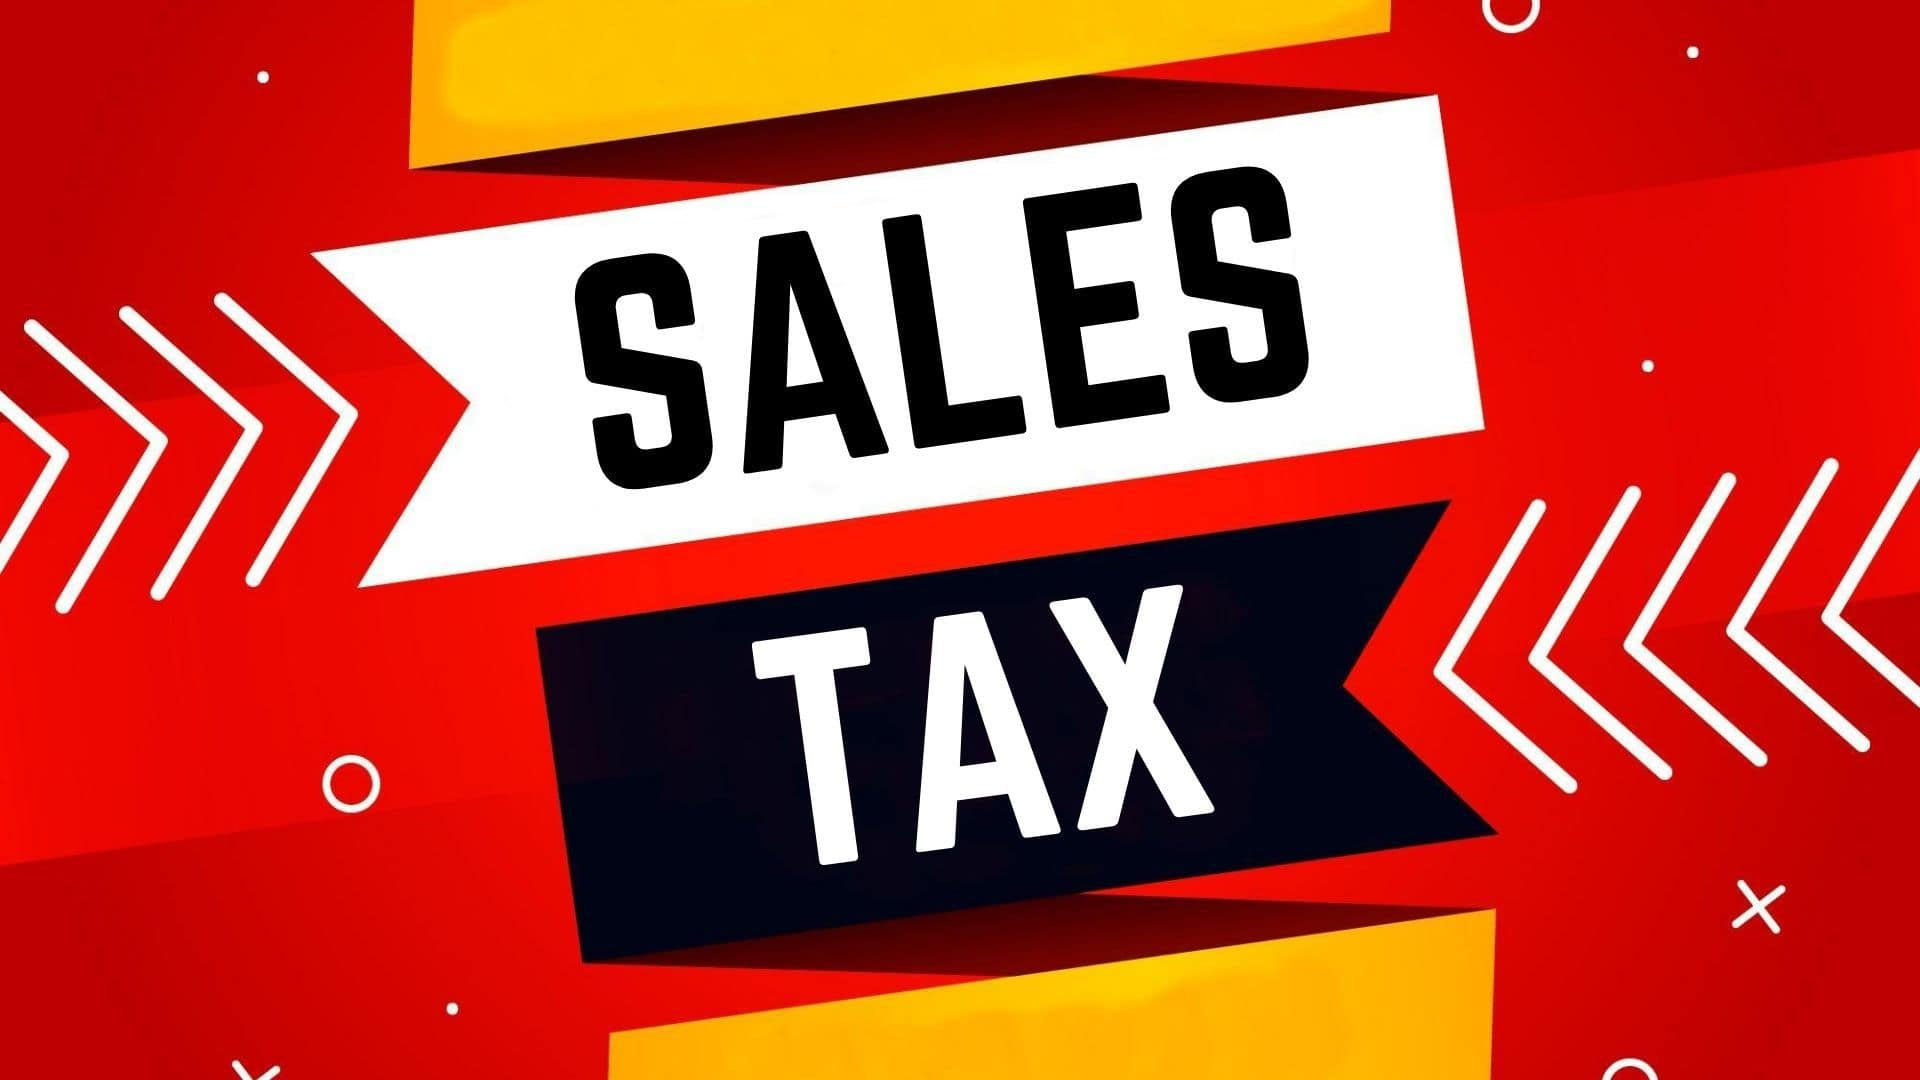 How does business calculate sales tax